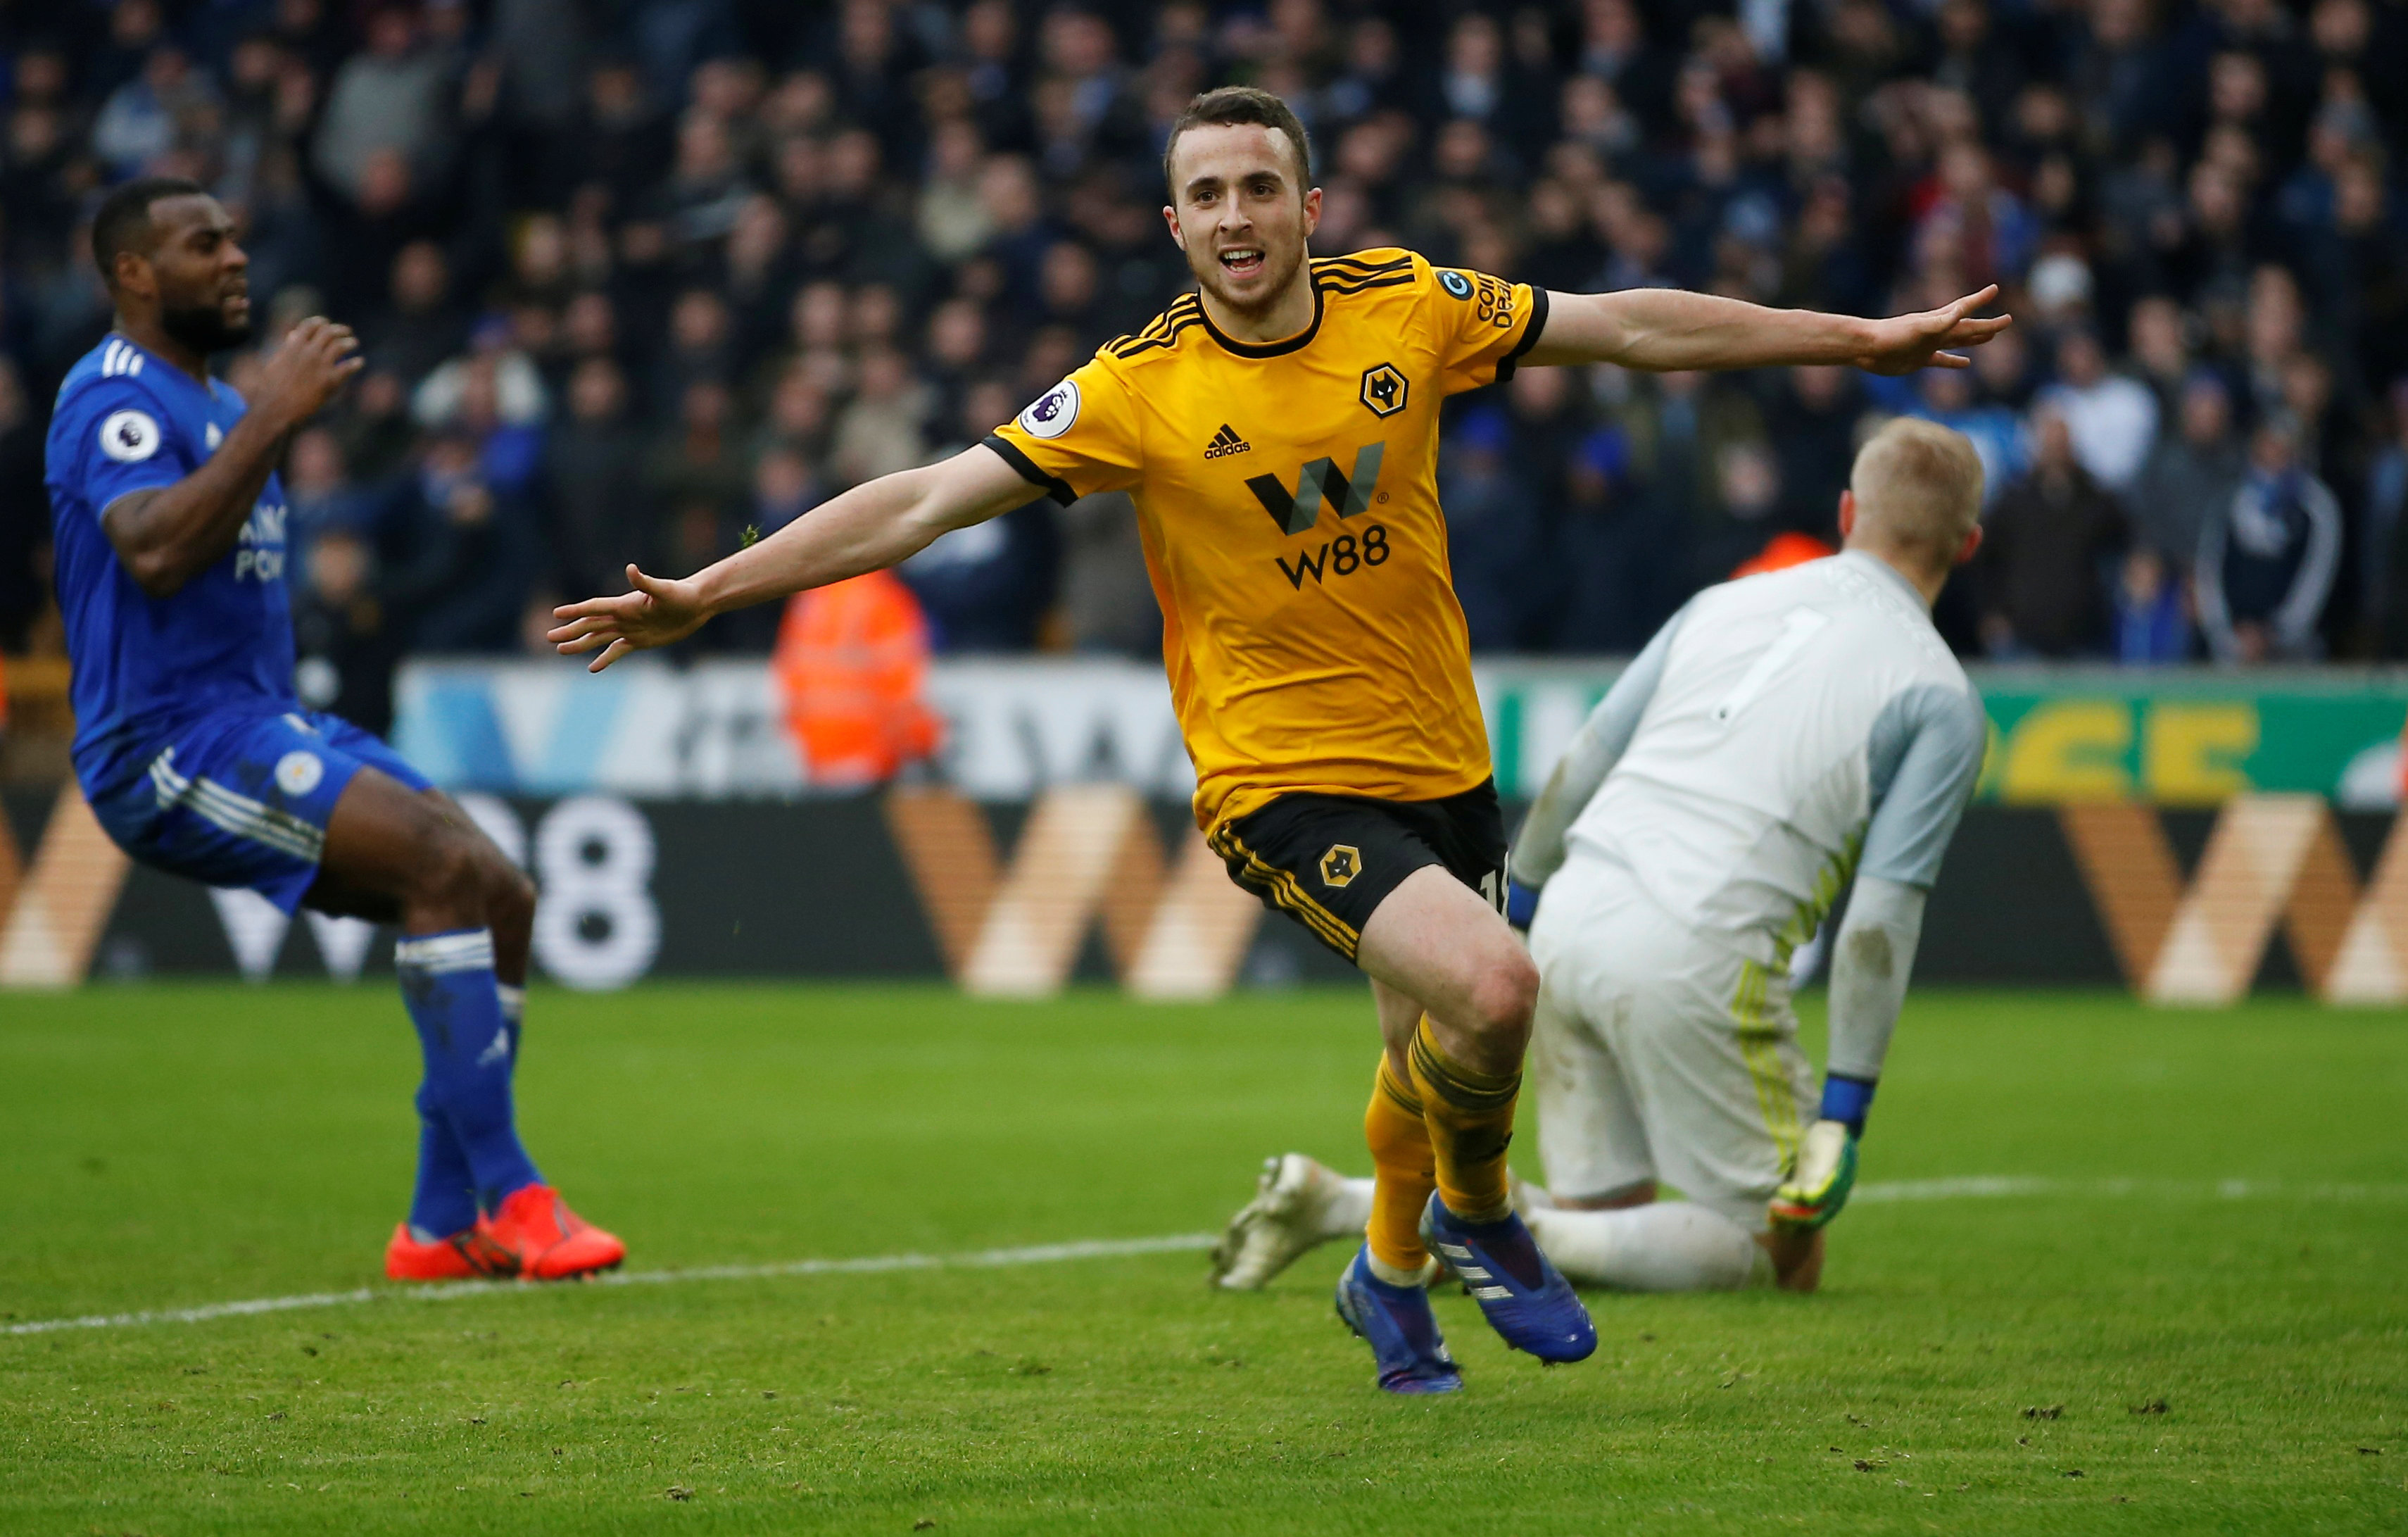 → Diogo Jota recorded nine goals and eight assists last season. How many of these attacking returns came before Gameweek 15?